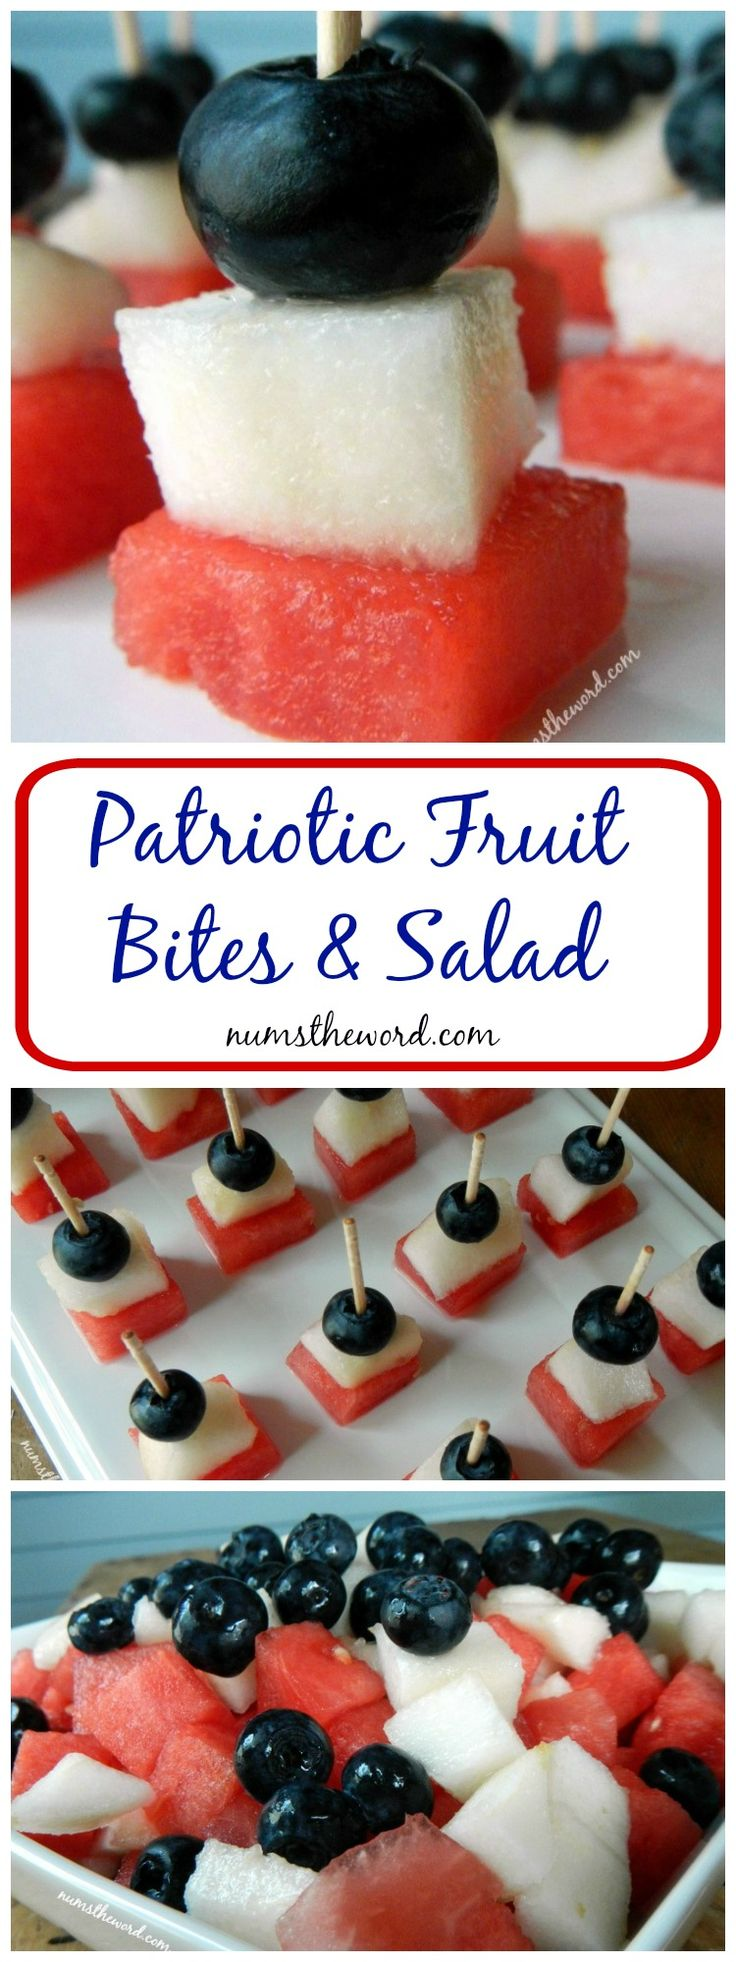 423 best images about i 4th of july on pinterest for 4th of july appetizers and desserts